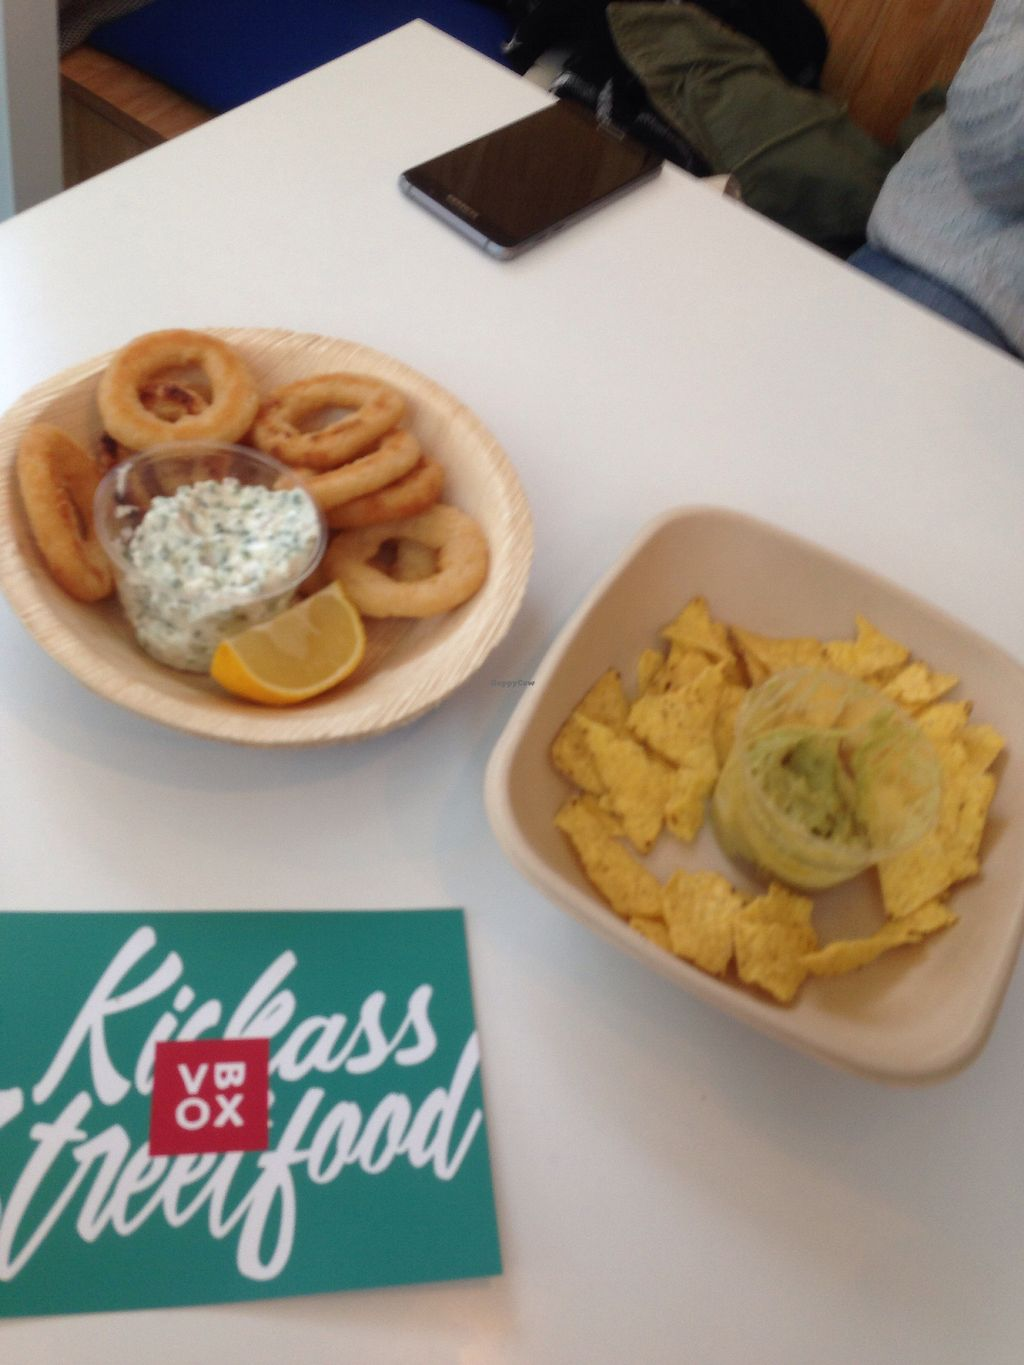 """Photo of V-Box  by <a href=""""/members/profile/NoraDevisscher"""">NoraDevisscher</a> <br/>Onion rings and nachos <br/> October 25, 2017  - <a href='/contact/abuse/image/94891/318738'>Report</a>"""